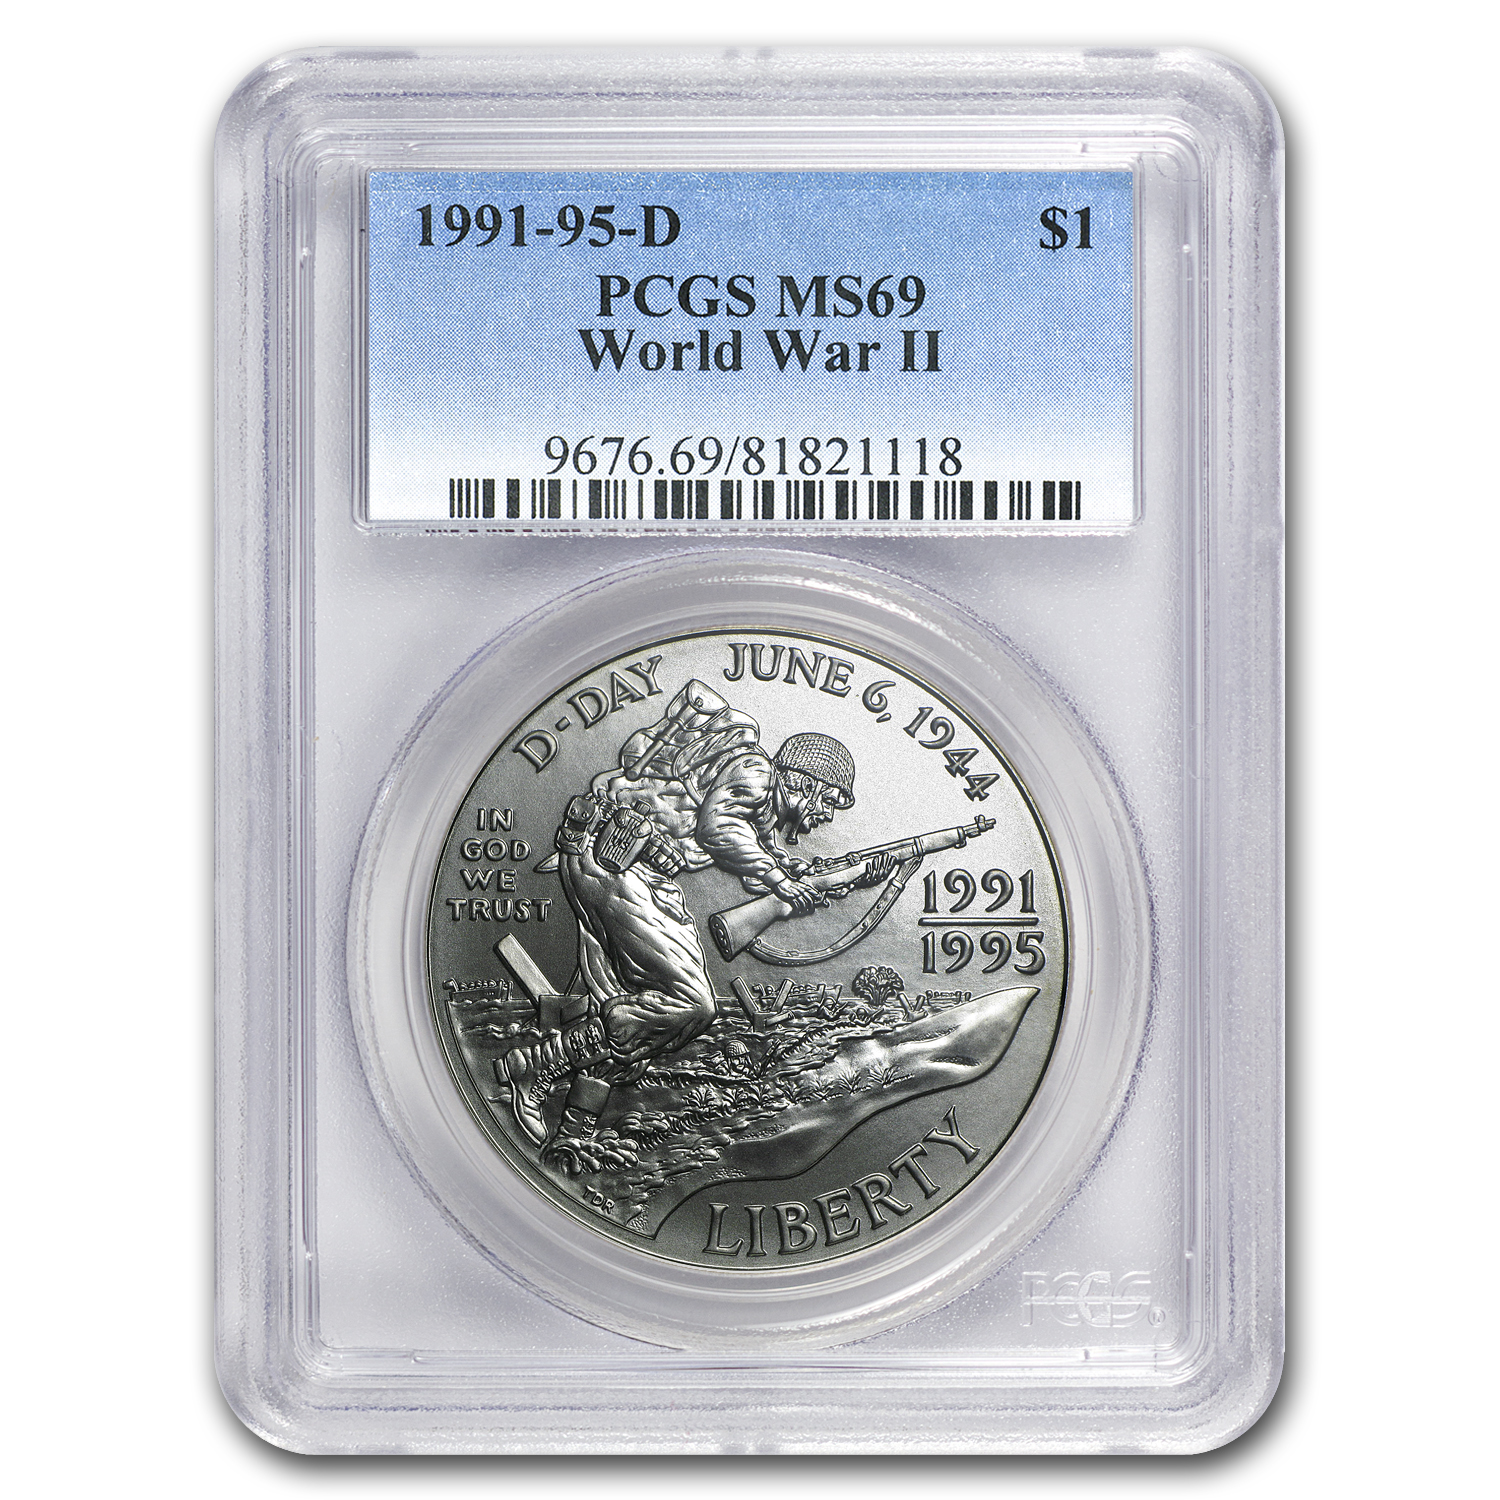 1991-1995-D World War II $1 Silver Commem MS-69 PCGS